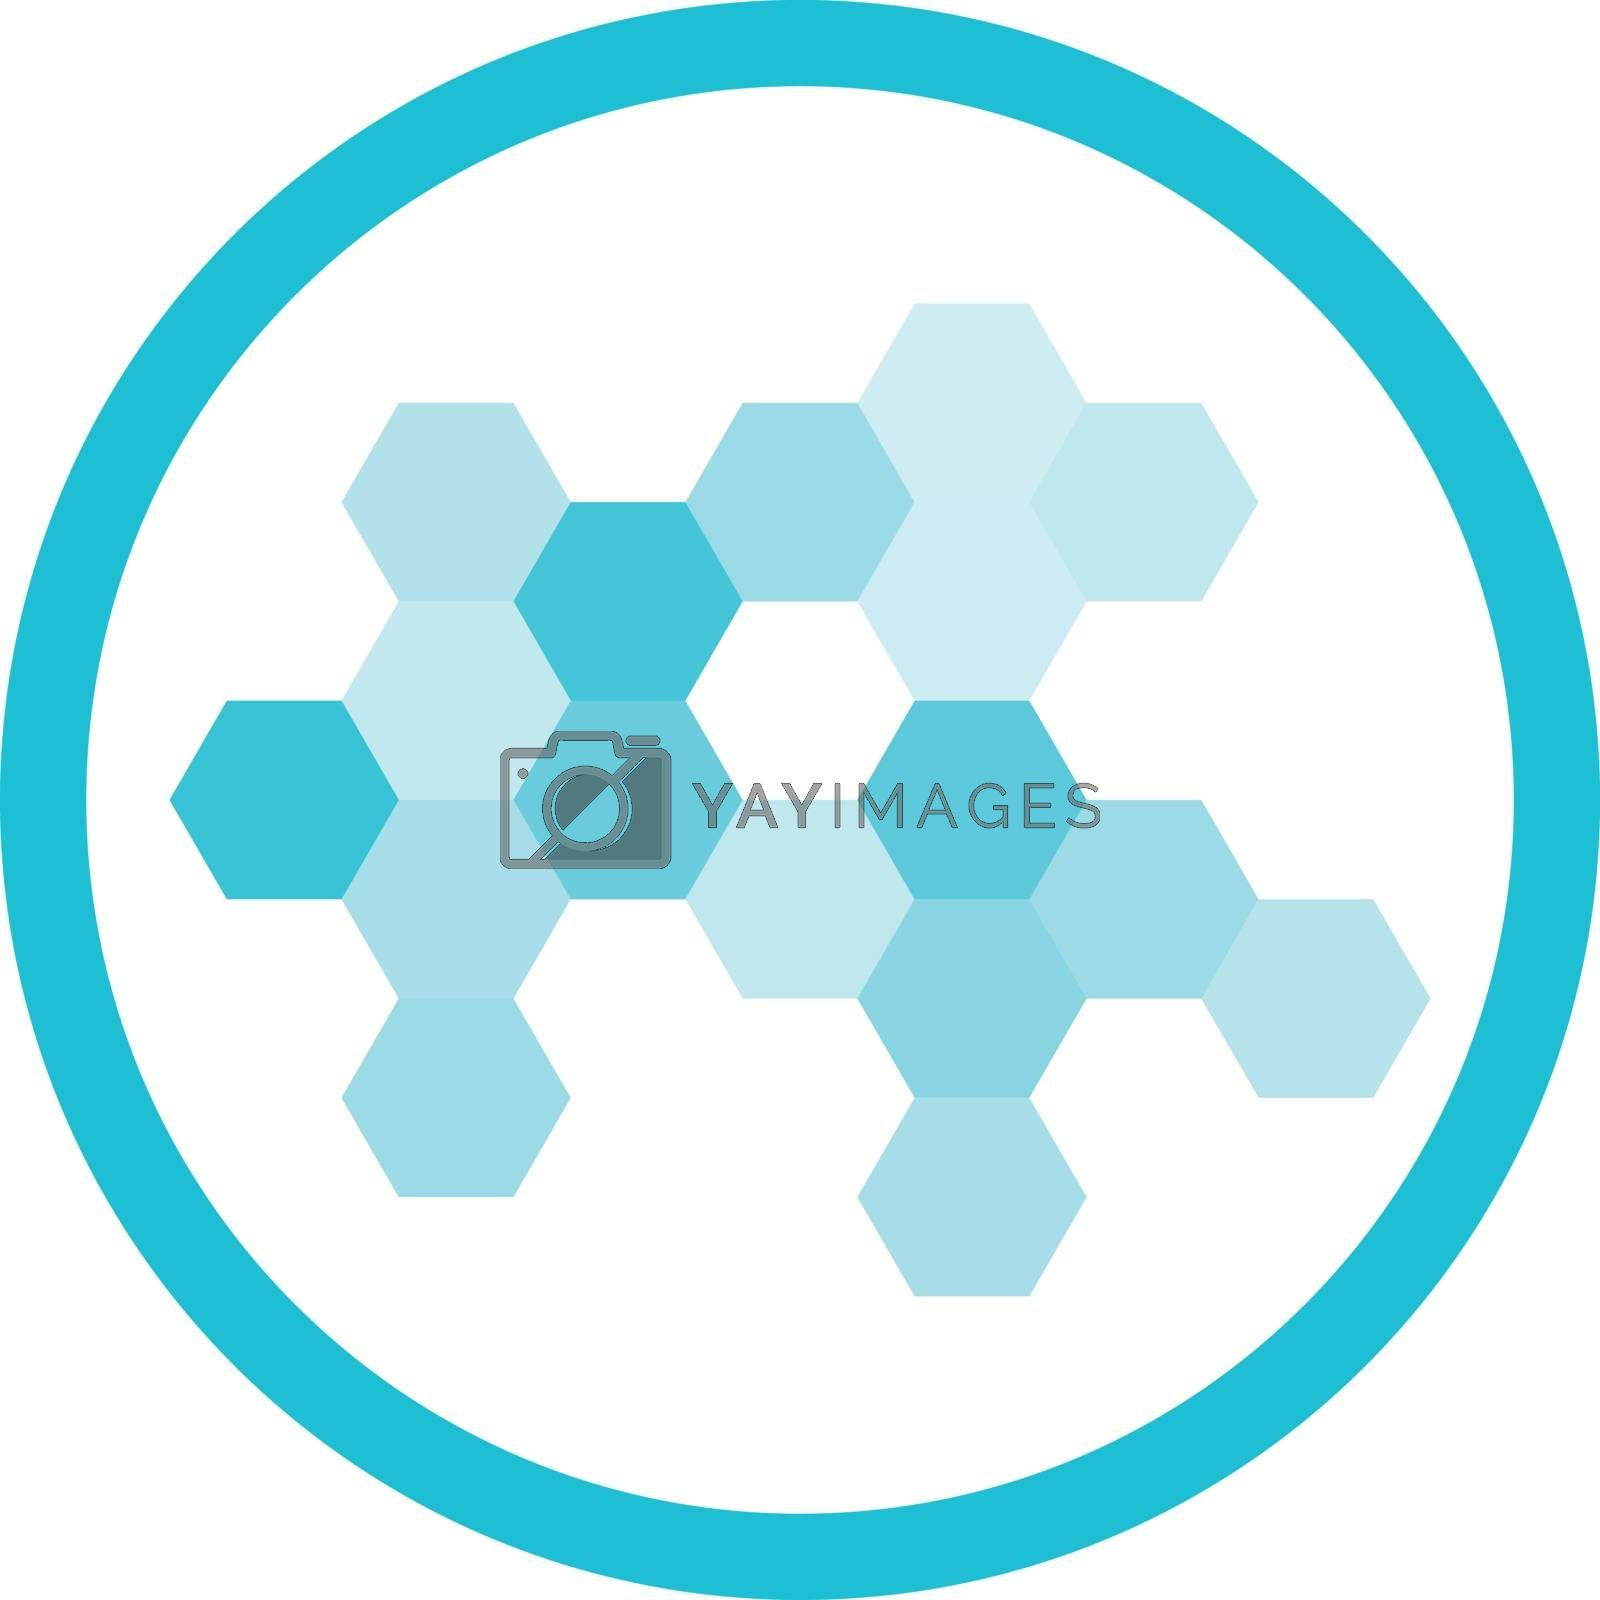 Nanotechnology cell structure hi-tech blue round vector icon